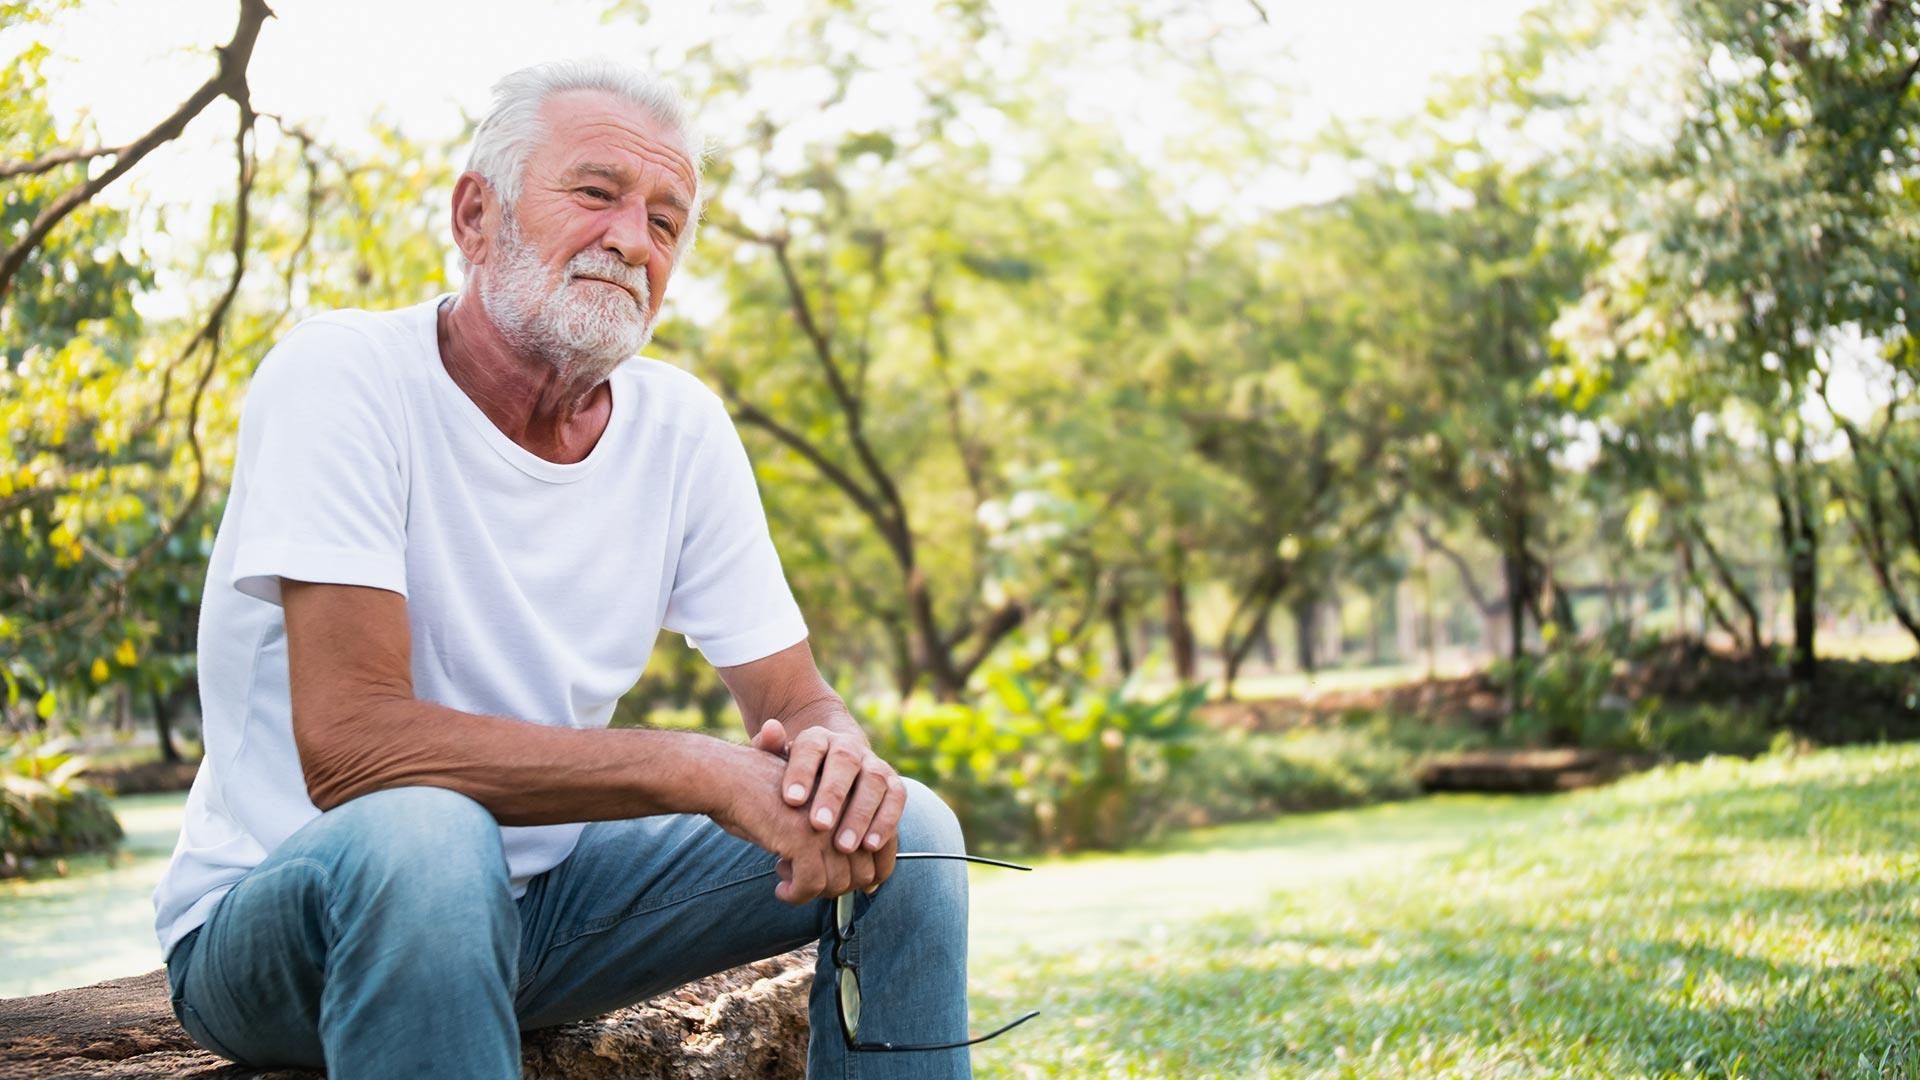 Do I Have an Enlarged Prostate?